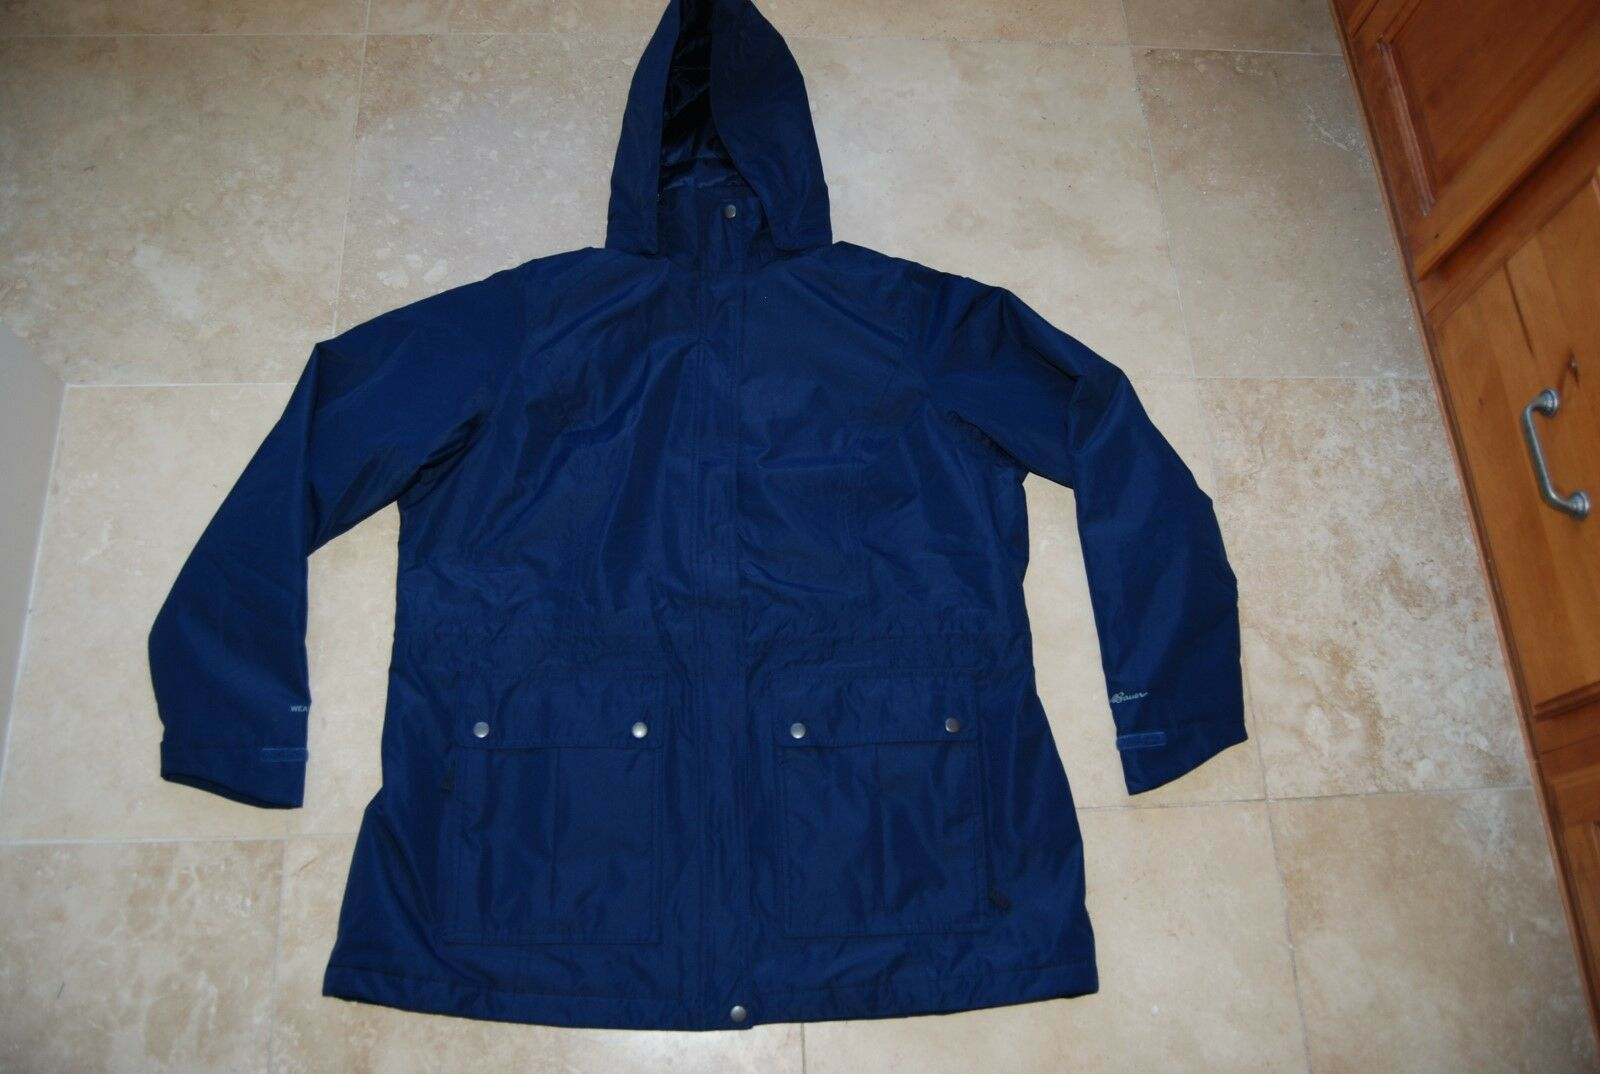 7ad4b78f8f029 Snap Lined Fleece BAUER EDDIE bluee NWT & Navy 1X Coat Hooded Front ...